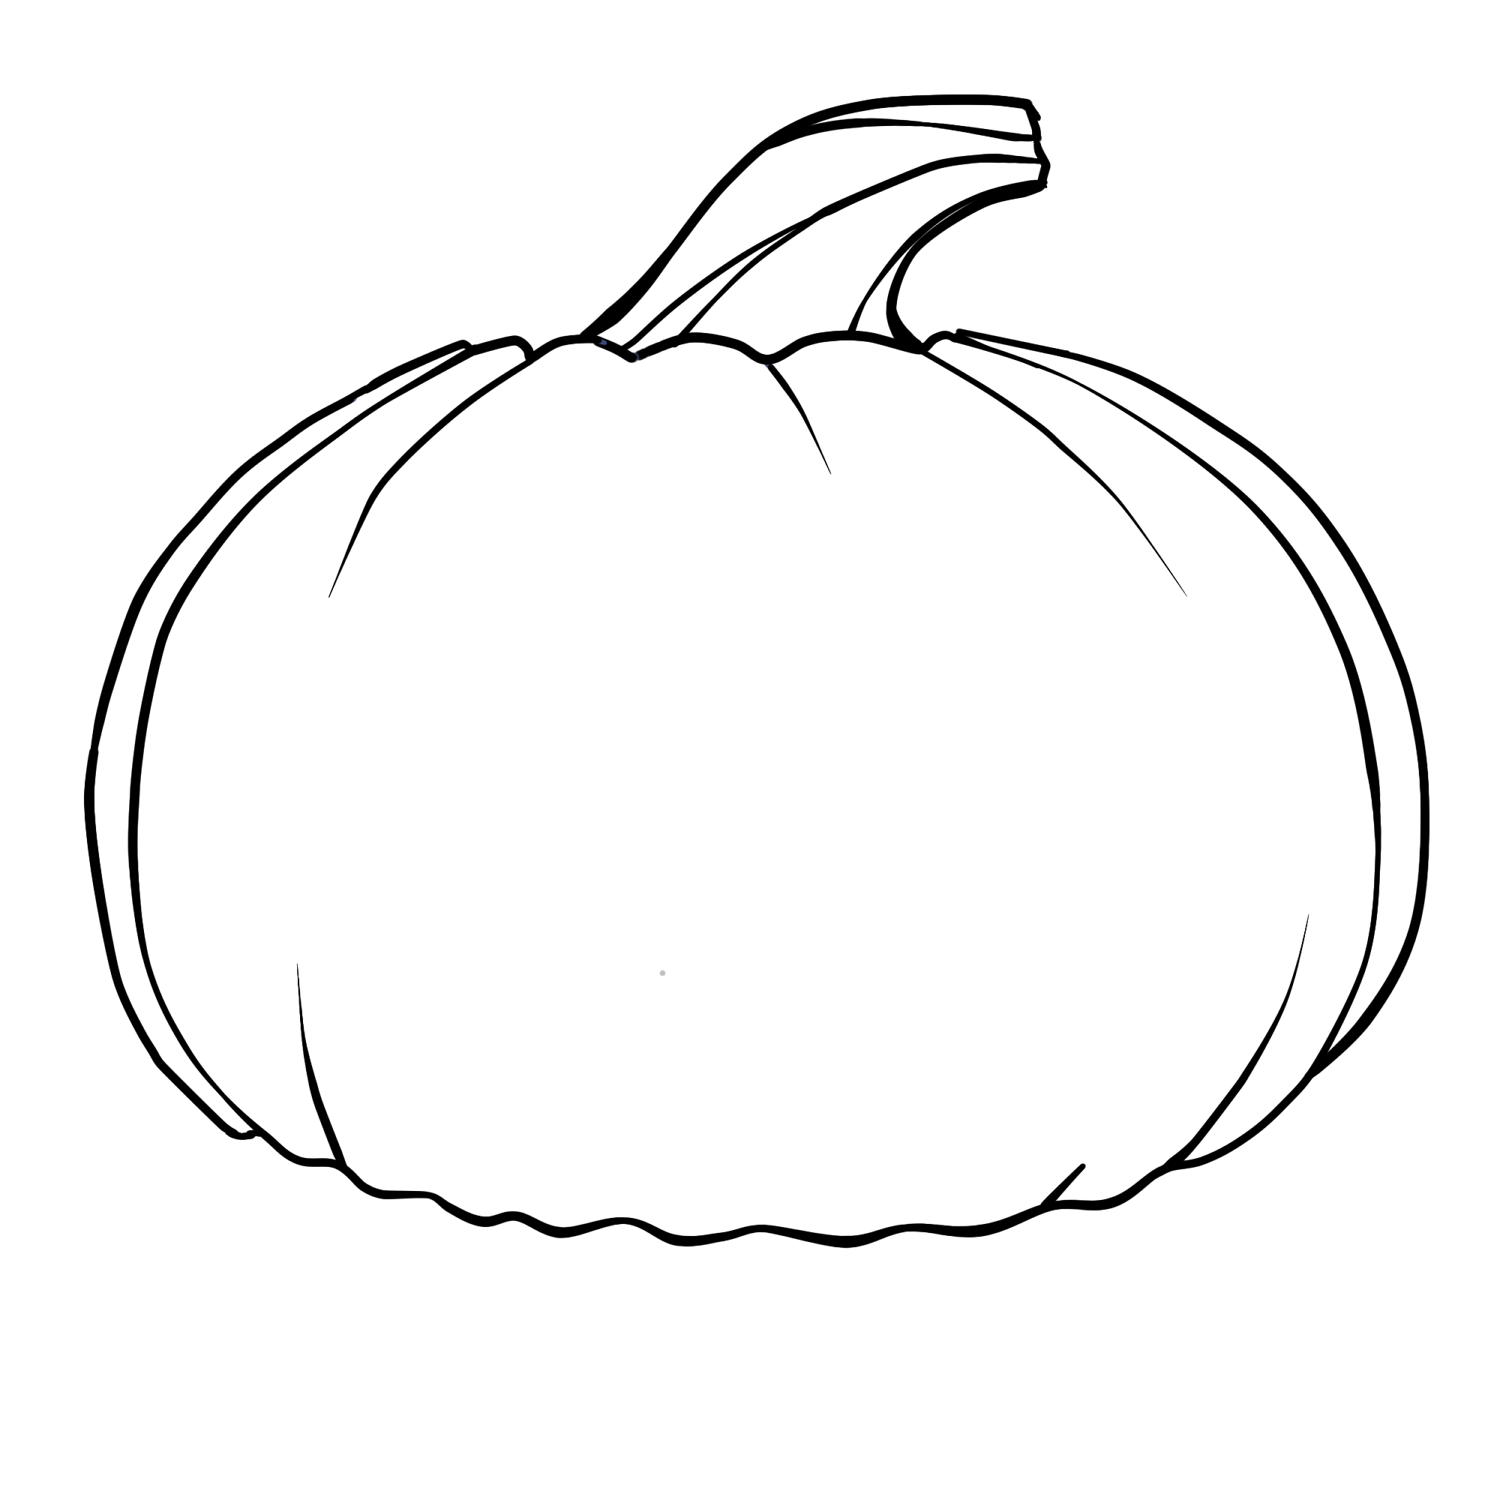 coloring pages for pumpkins pumpkin coloring pages 360coloringpages pumpkins pages for coloring